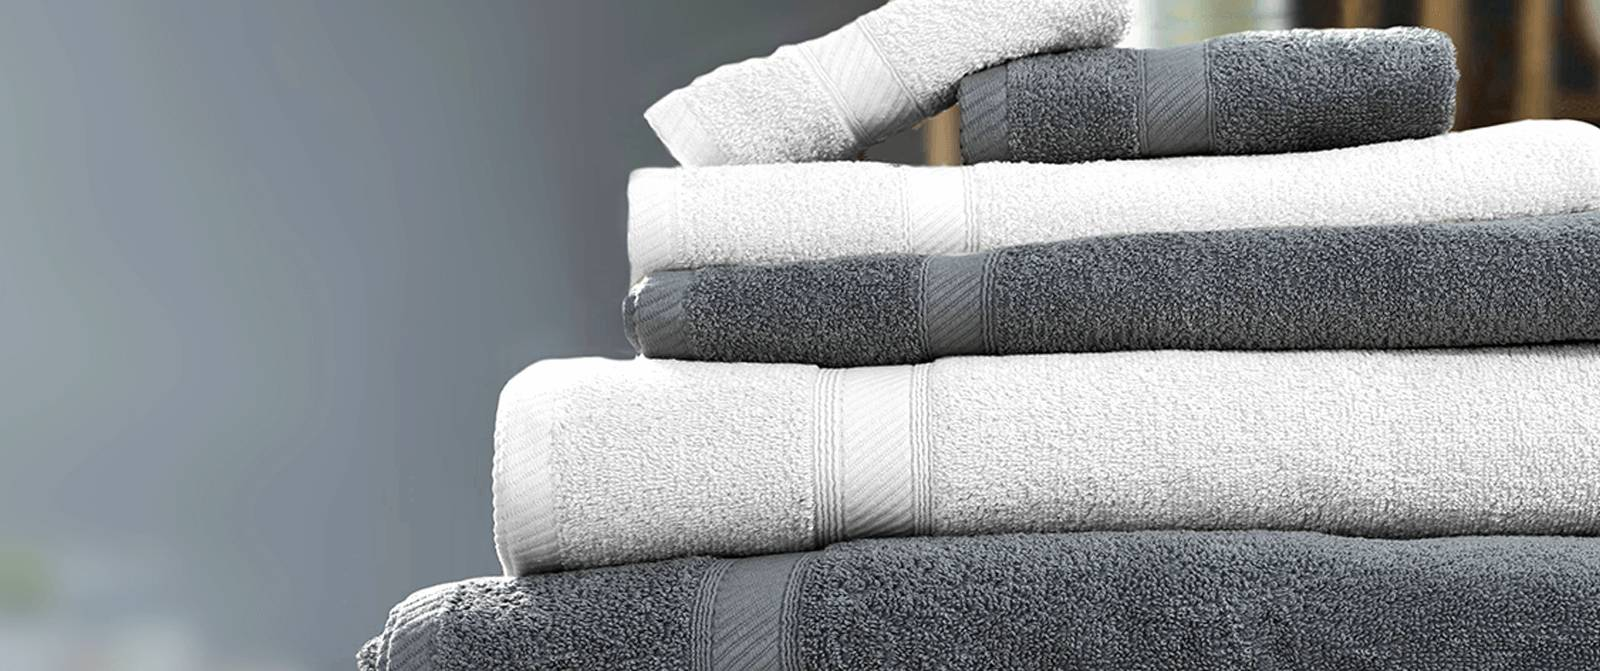 Guide To Buy The Best Towel For Yourself